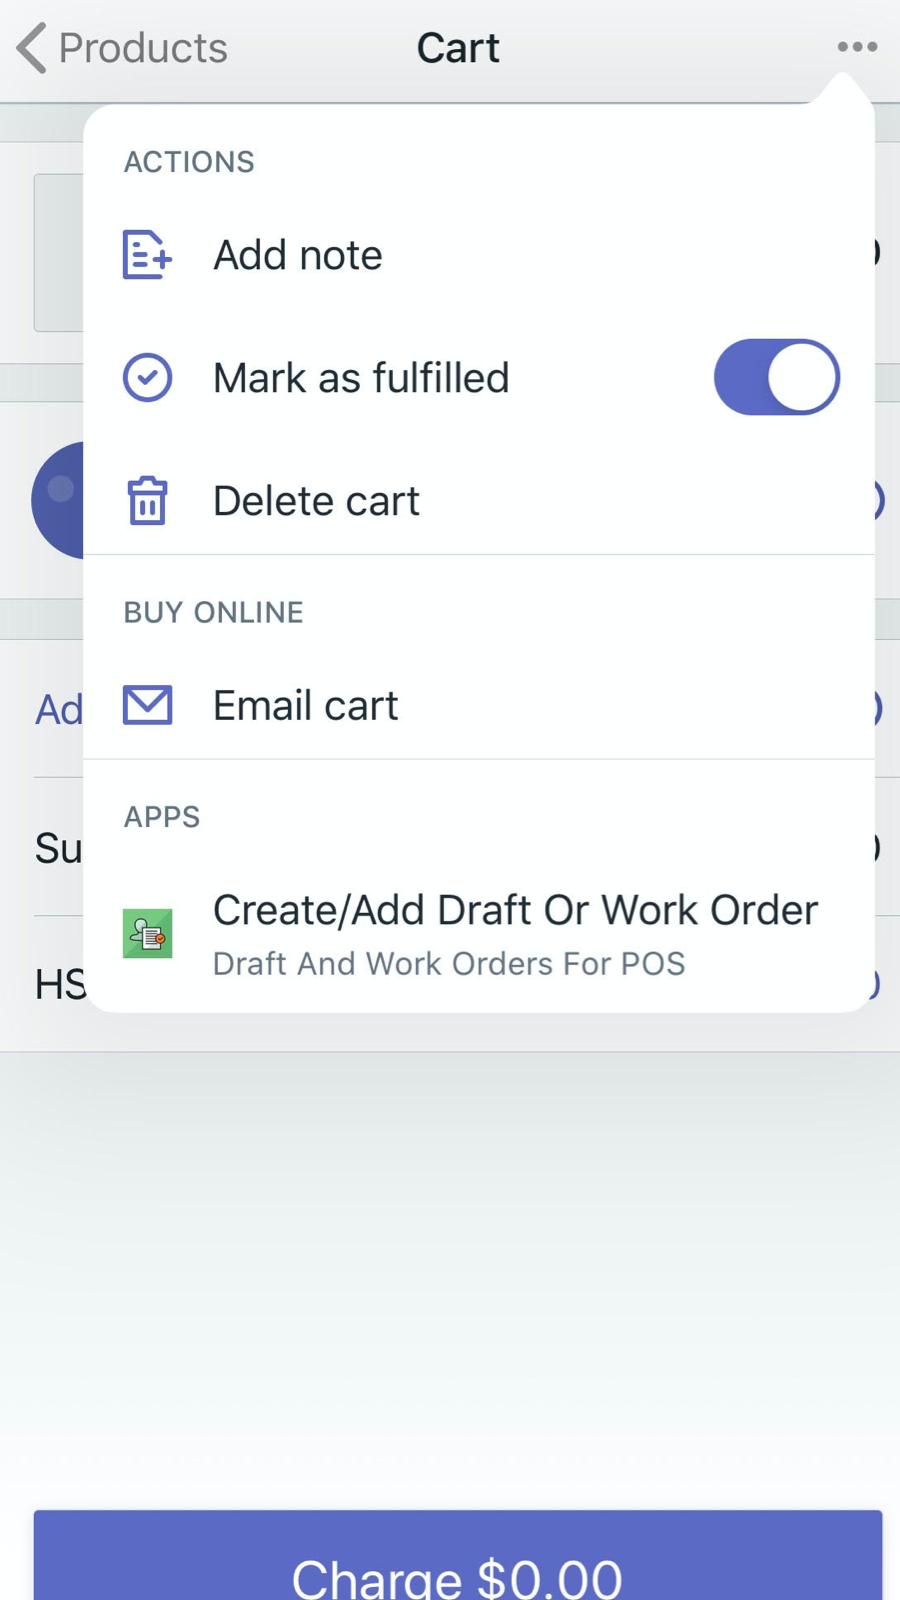 Draft Orders For POS Link - Mobile POS